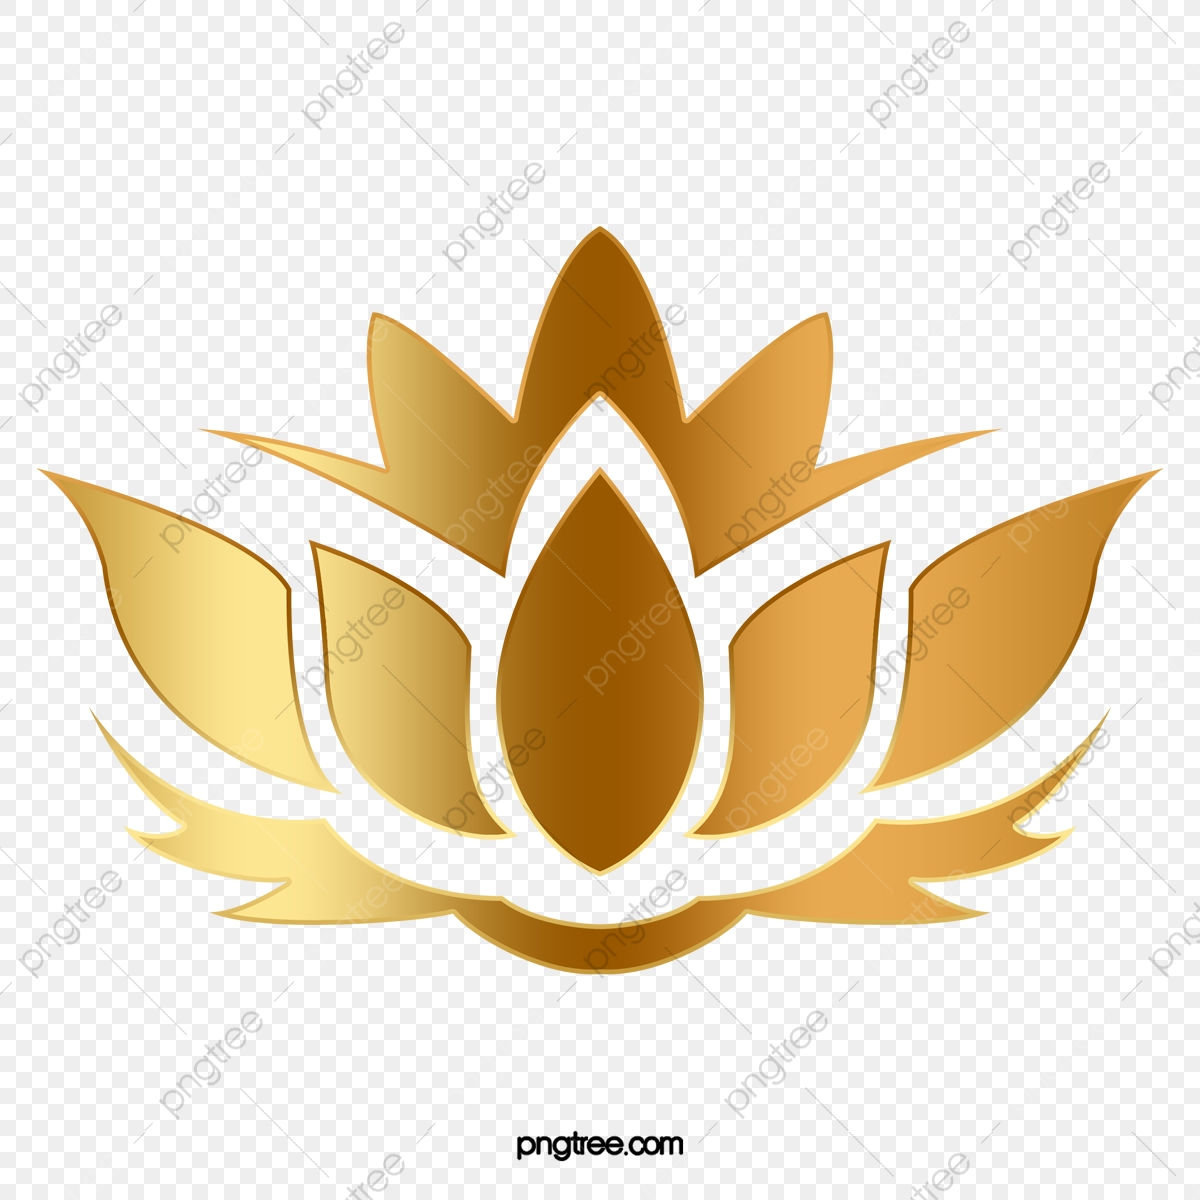 Yellow Lotus Logo Logo Clipart Lotus Clipart Yellow Png Transparent Clipart Image And Psd File For Free Download